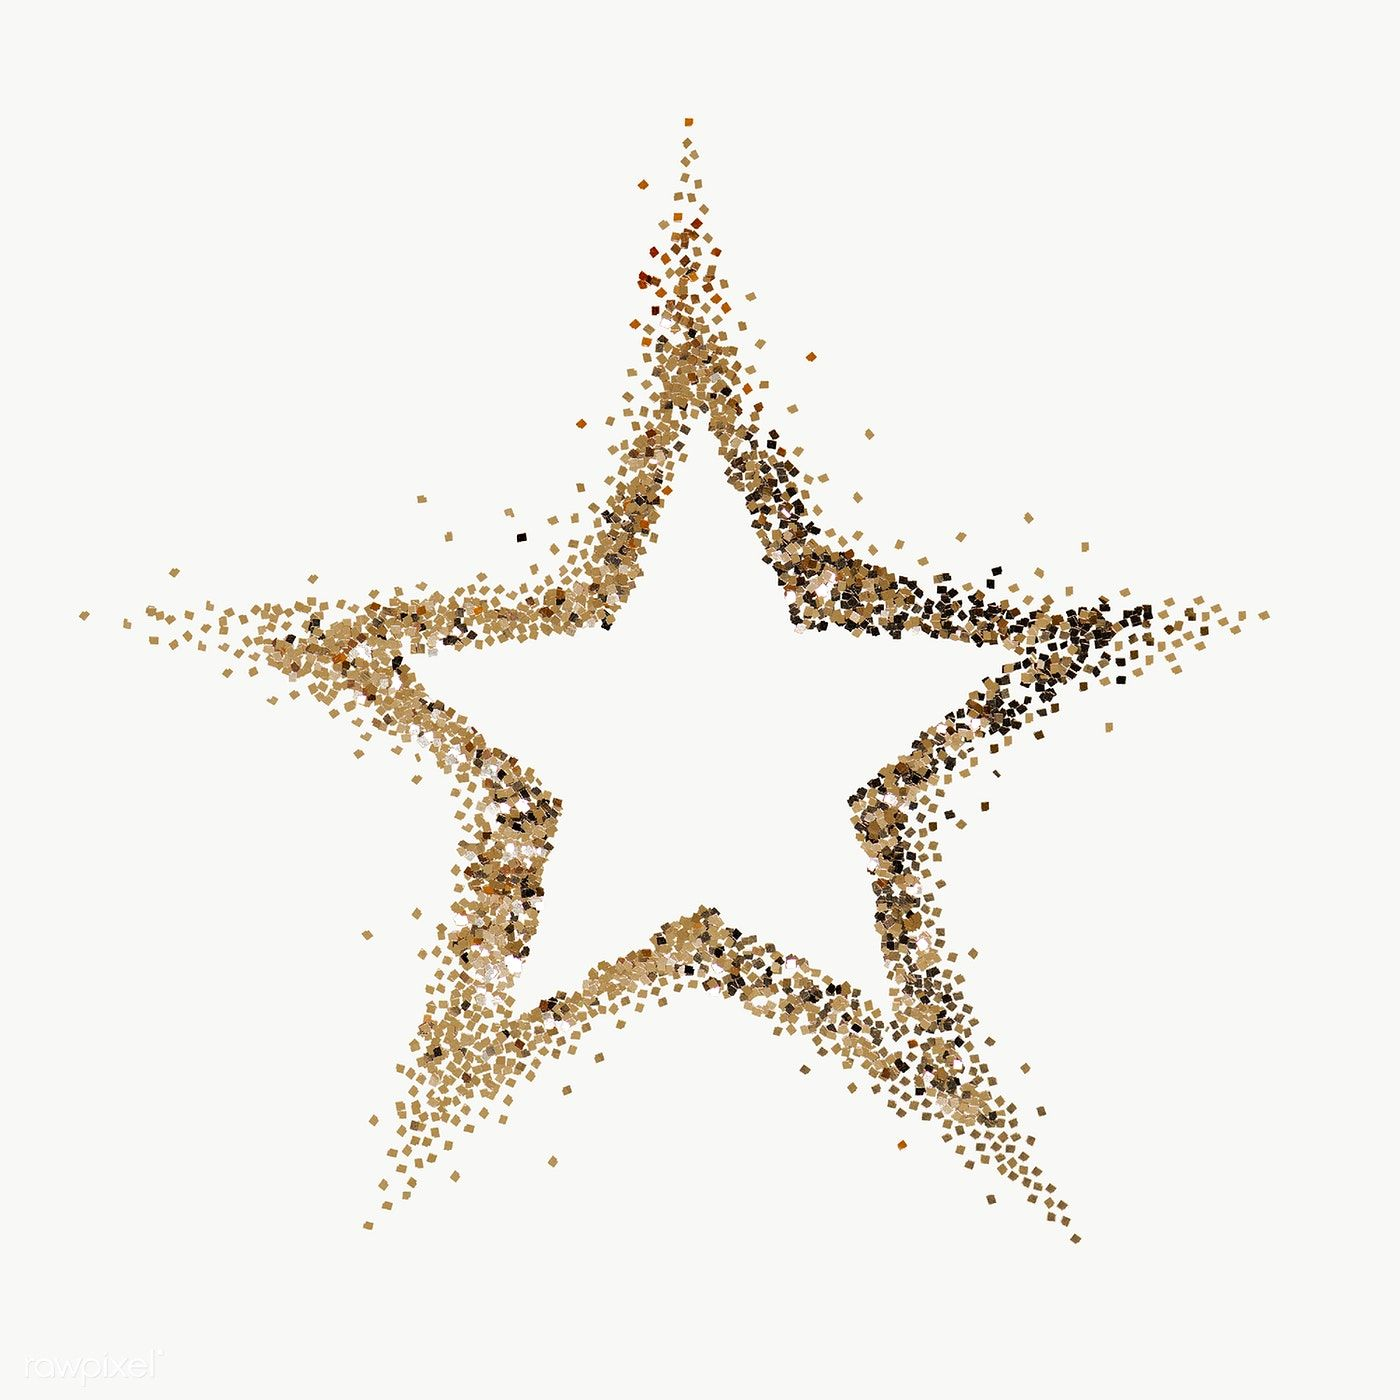 Download Premium Png Of Shiny Dusty Gold Star Transparent Png 2040282 Gold Stars Vector Background Pattern Star Illustration